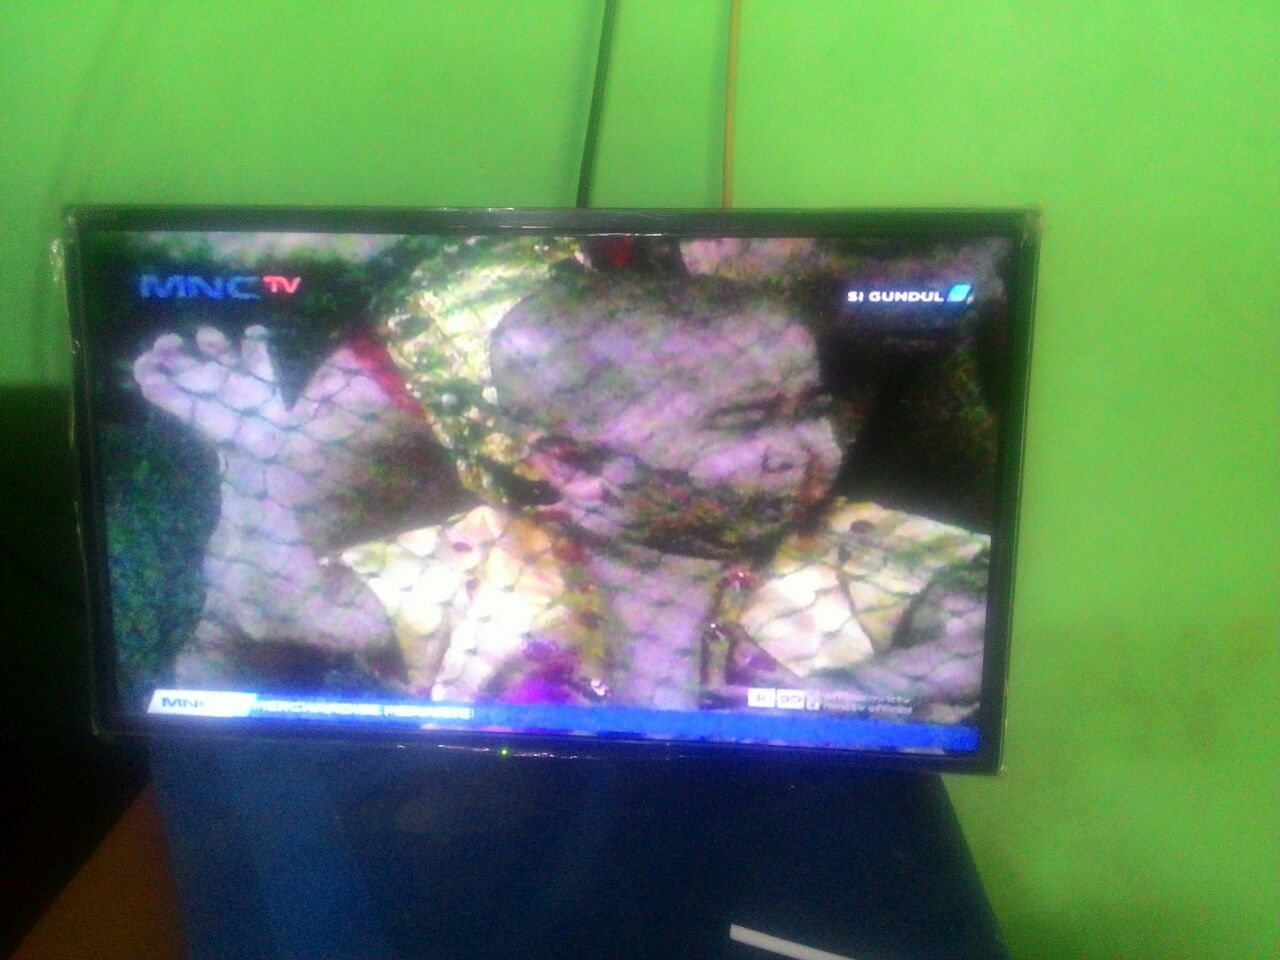 Service Tv Online Led Sharp Aquos Lc 24le170 Kondisi 24inch Lc24le170i B Tipe Yang Sudah Dalam Normal